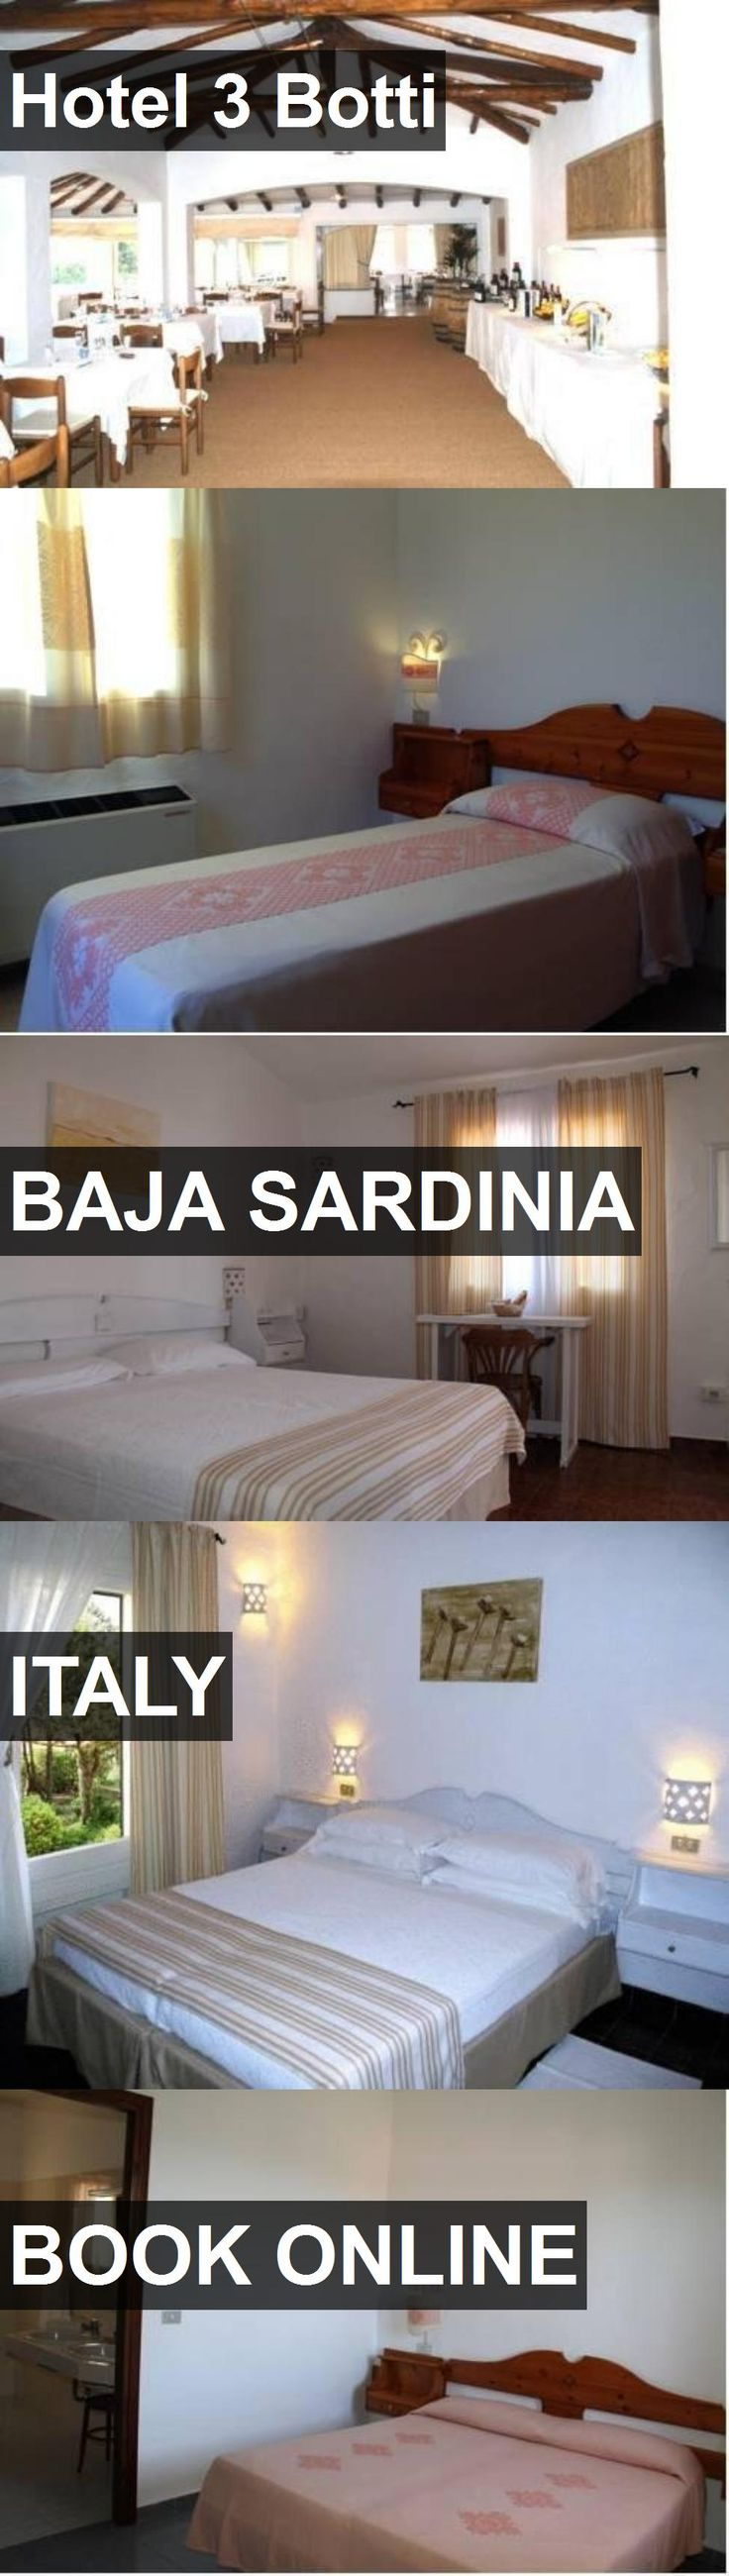 Hotel Hotel 3 Botti in Baja Sardinia, Italy. For more information, photos, reviews and best prices please follow the link. #Italy #BajaSardinia #Hotel3Botti #hotel #travel #vacation